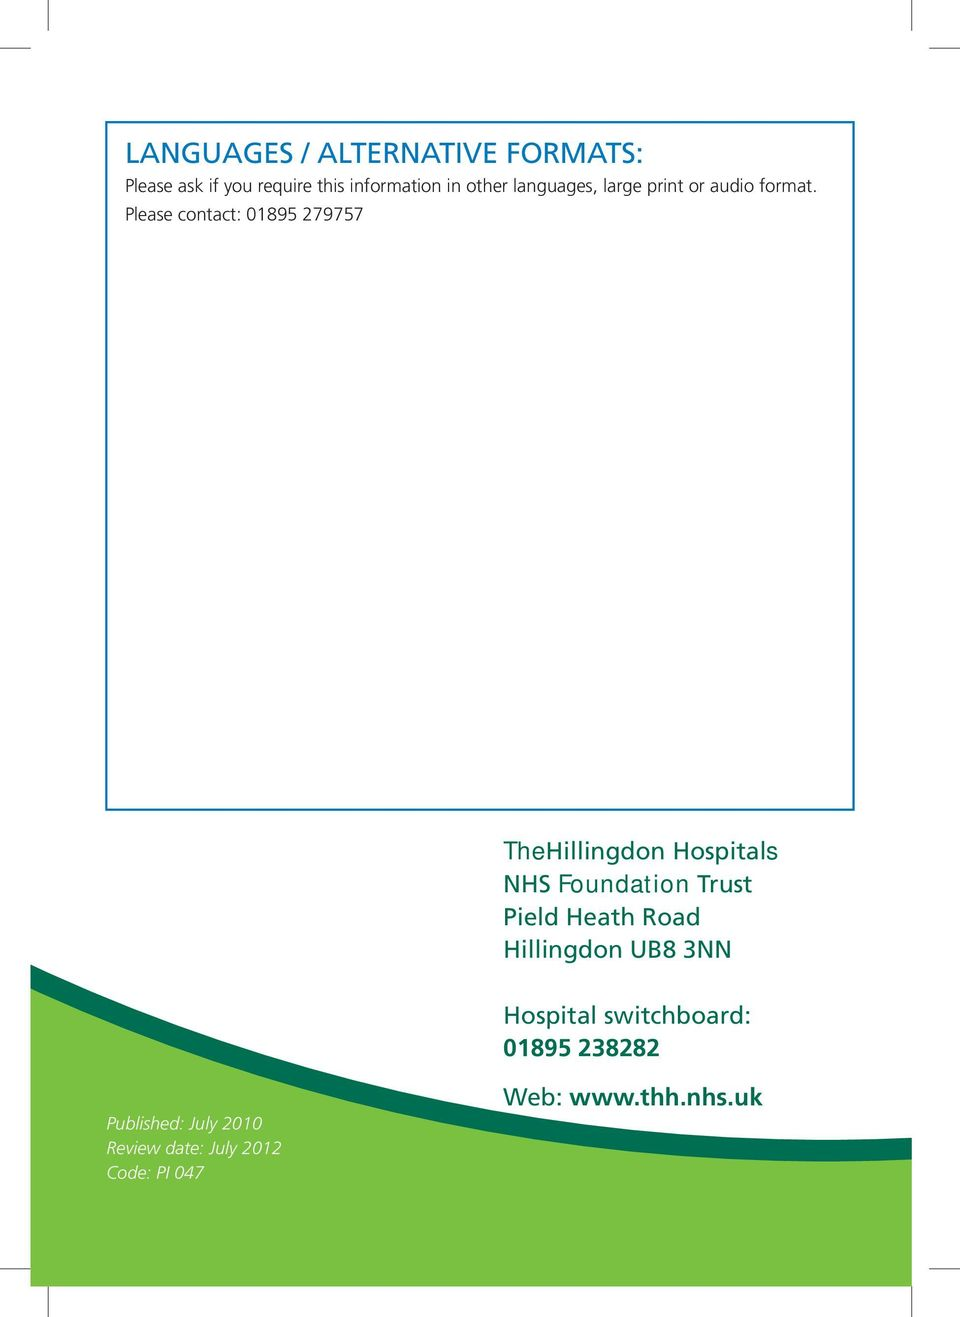 Please contact: 01895 279757 TheHillingdon Hospitals NHS Foundation Trust Pield Heath